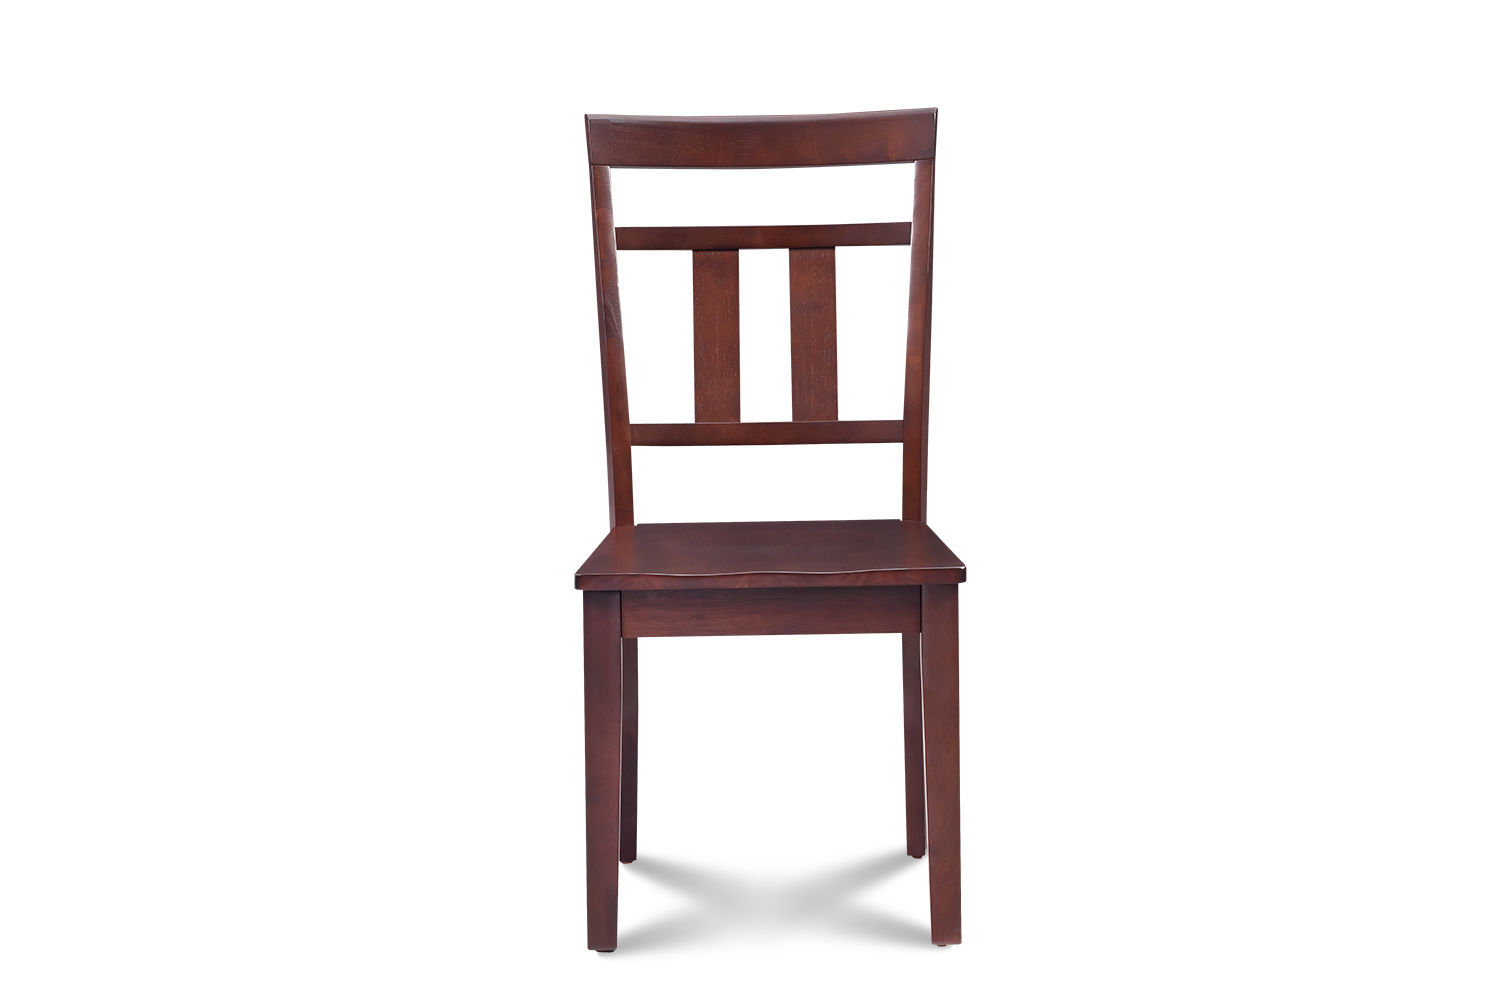 SET OF 6 KITCHEN DINING SIDE CHAIRS w/ WOODEN SEAT IN MAHOGANY FINISH